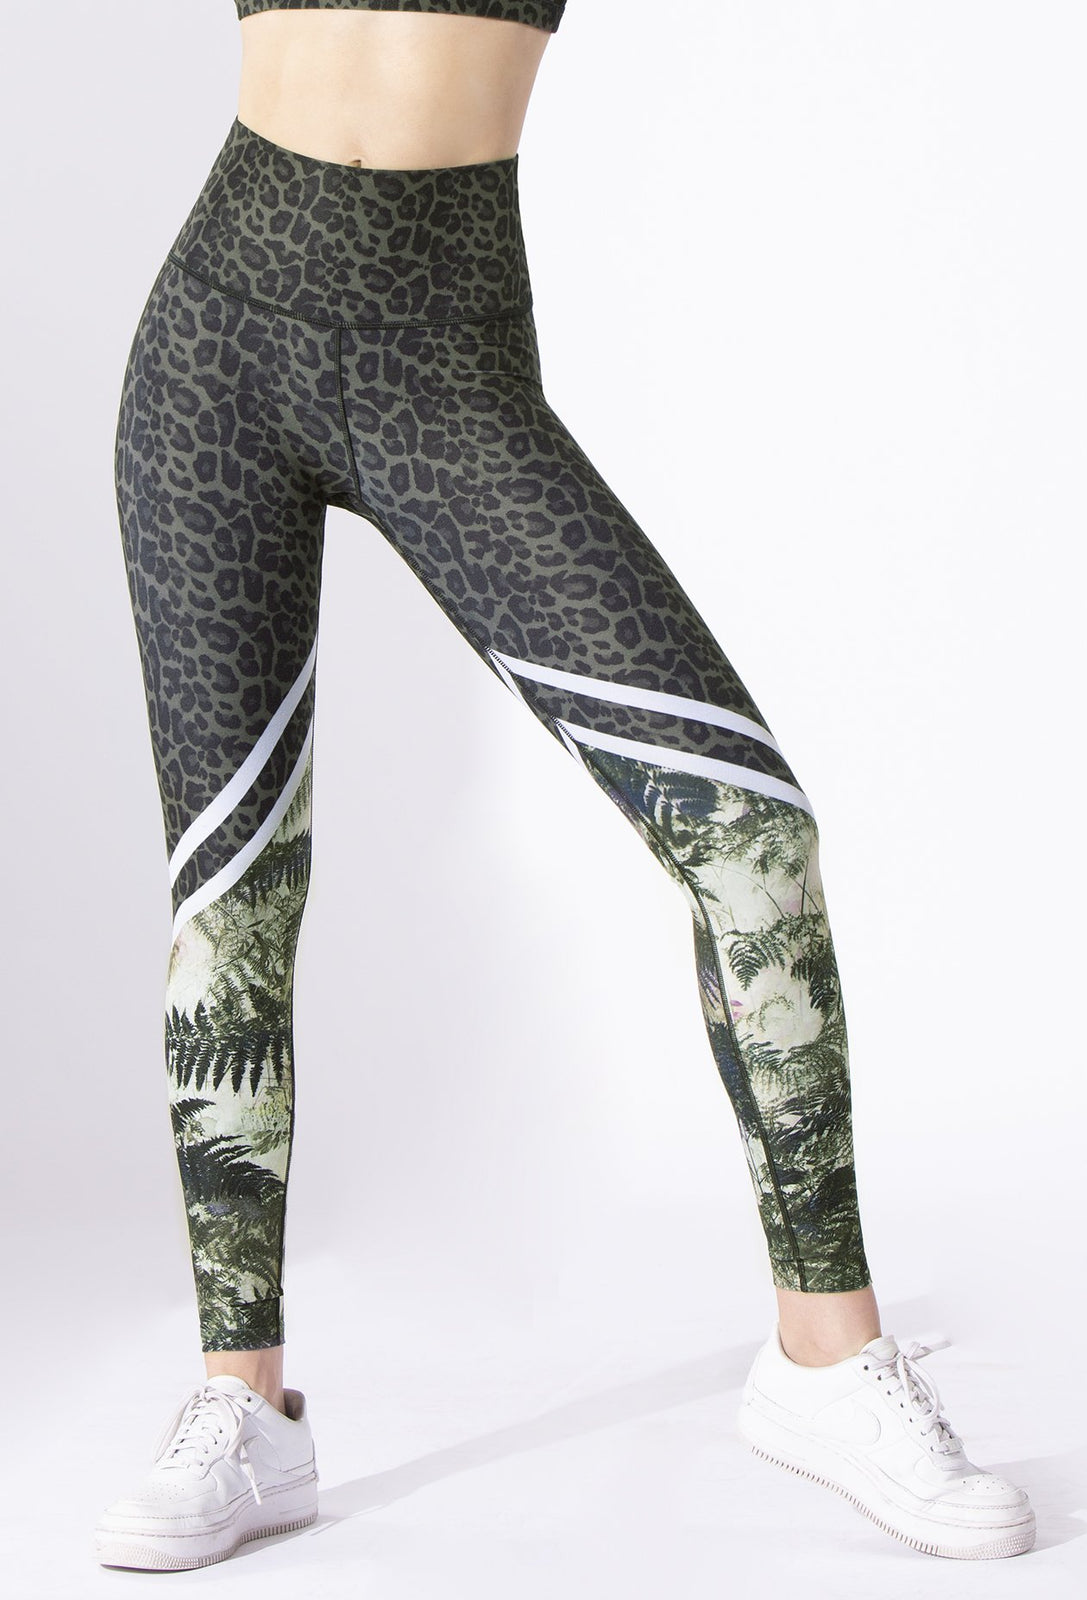 Safari Green Cheetah/Green Fern High Waist Legging